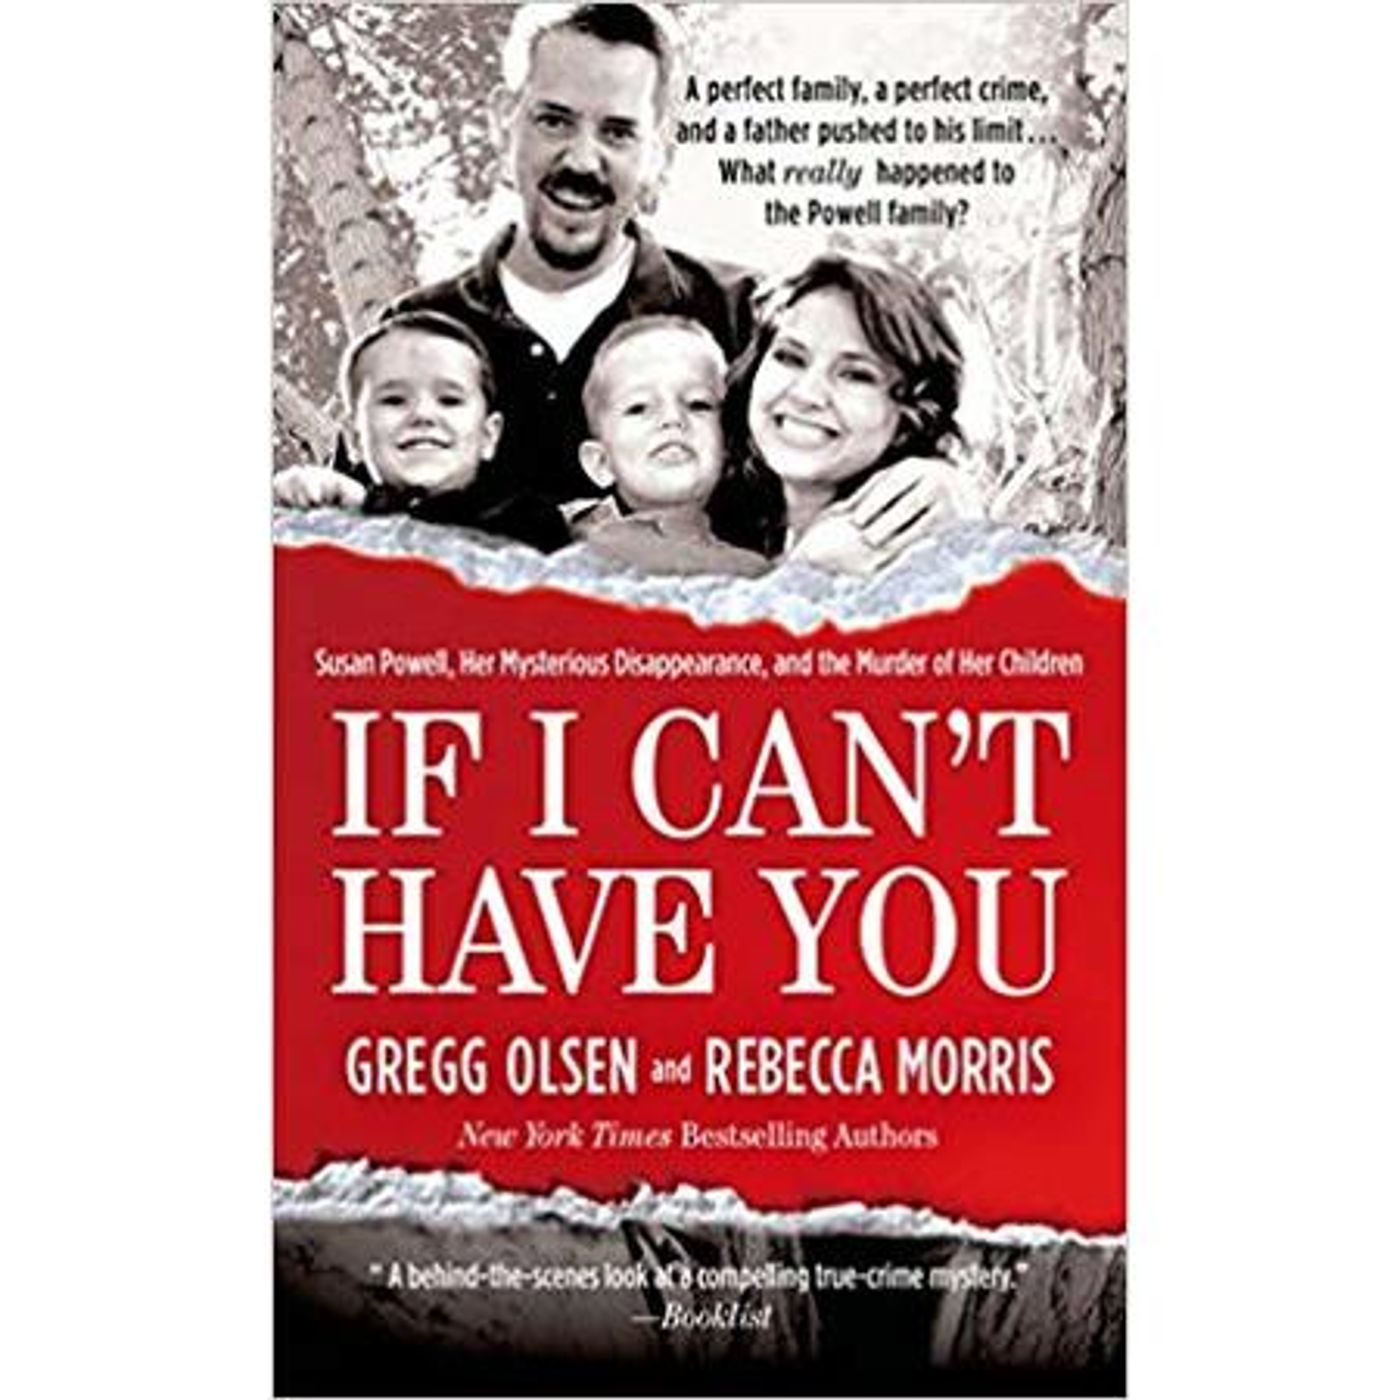 IF I CAN'T HAVE YOU-Rebecca Morris